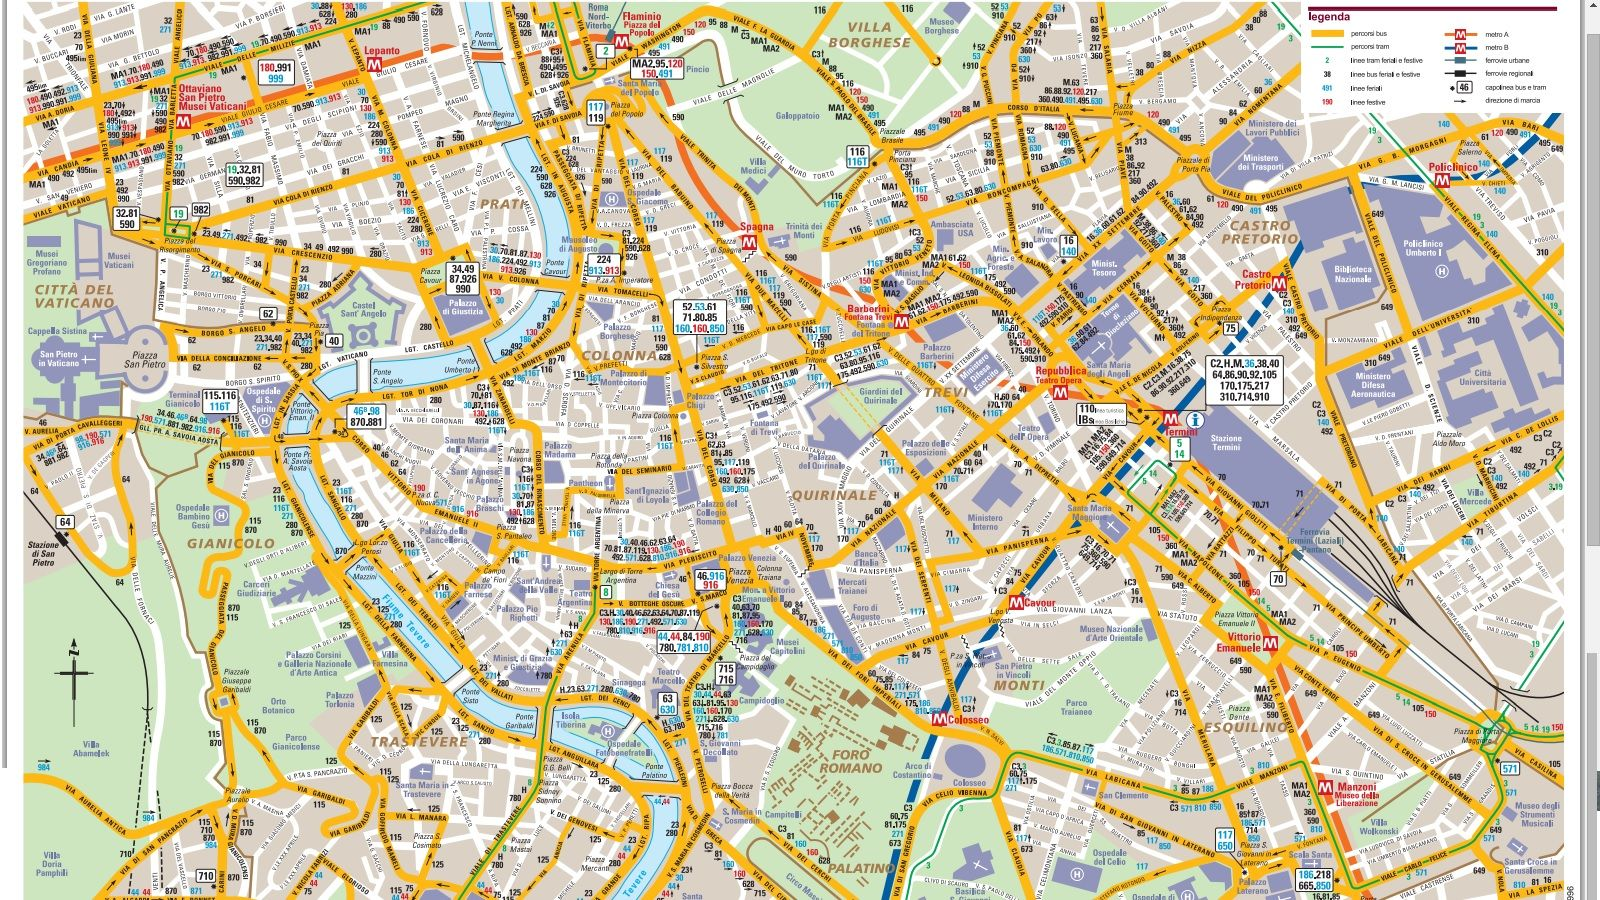 Map of Bus Routes in Rome Italy | Bus map, Map, Rome